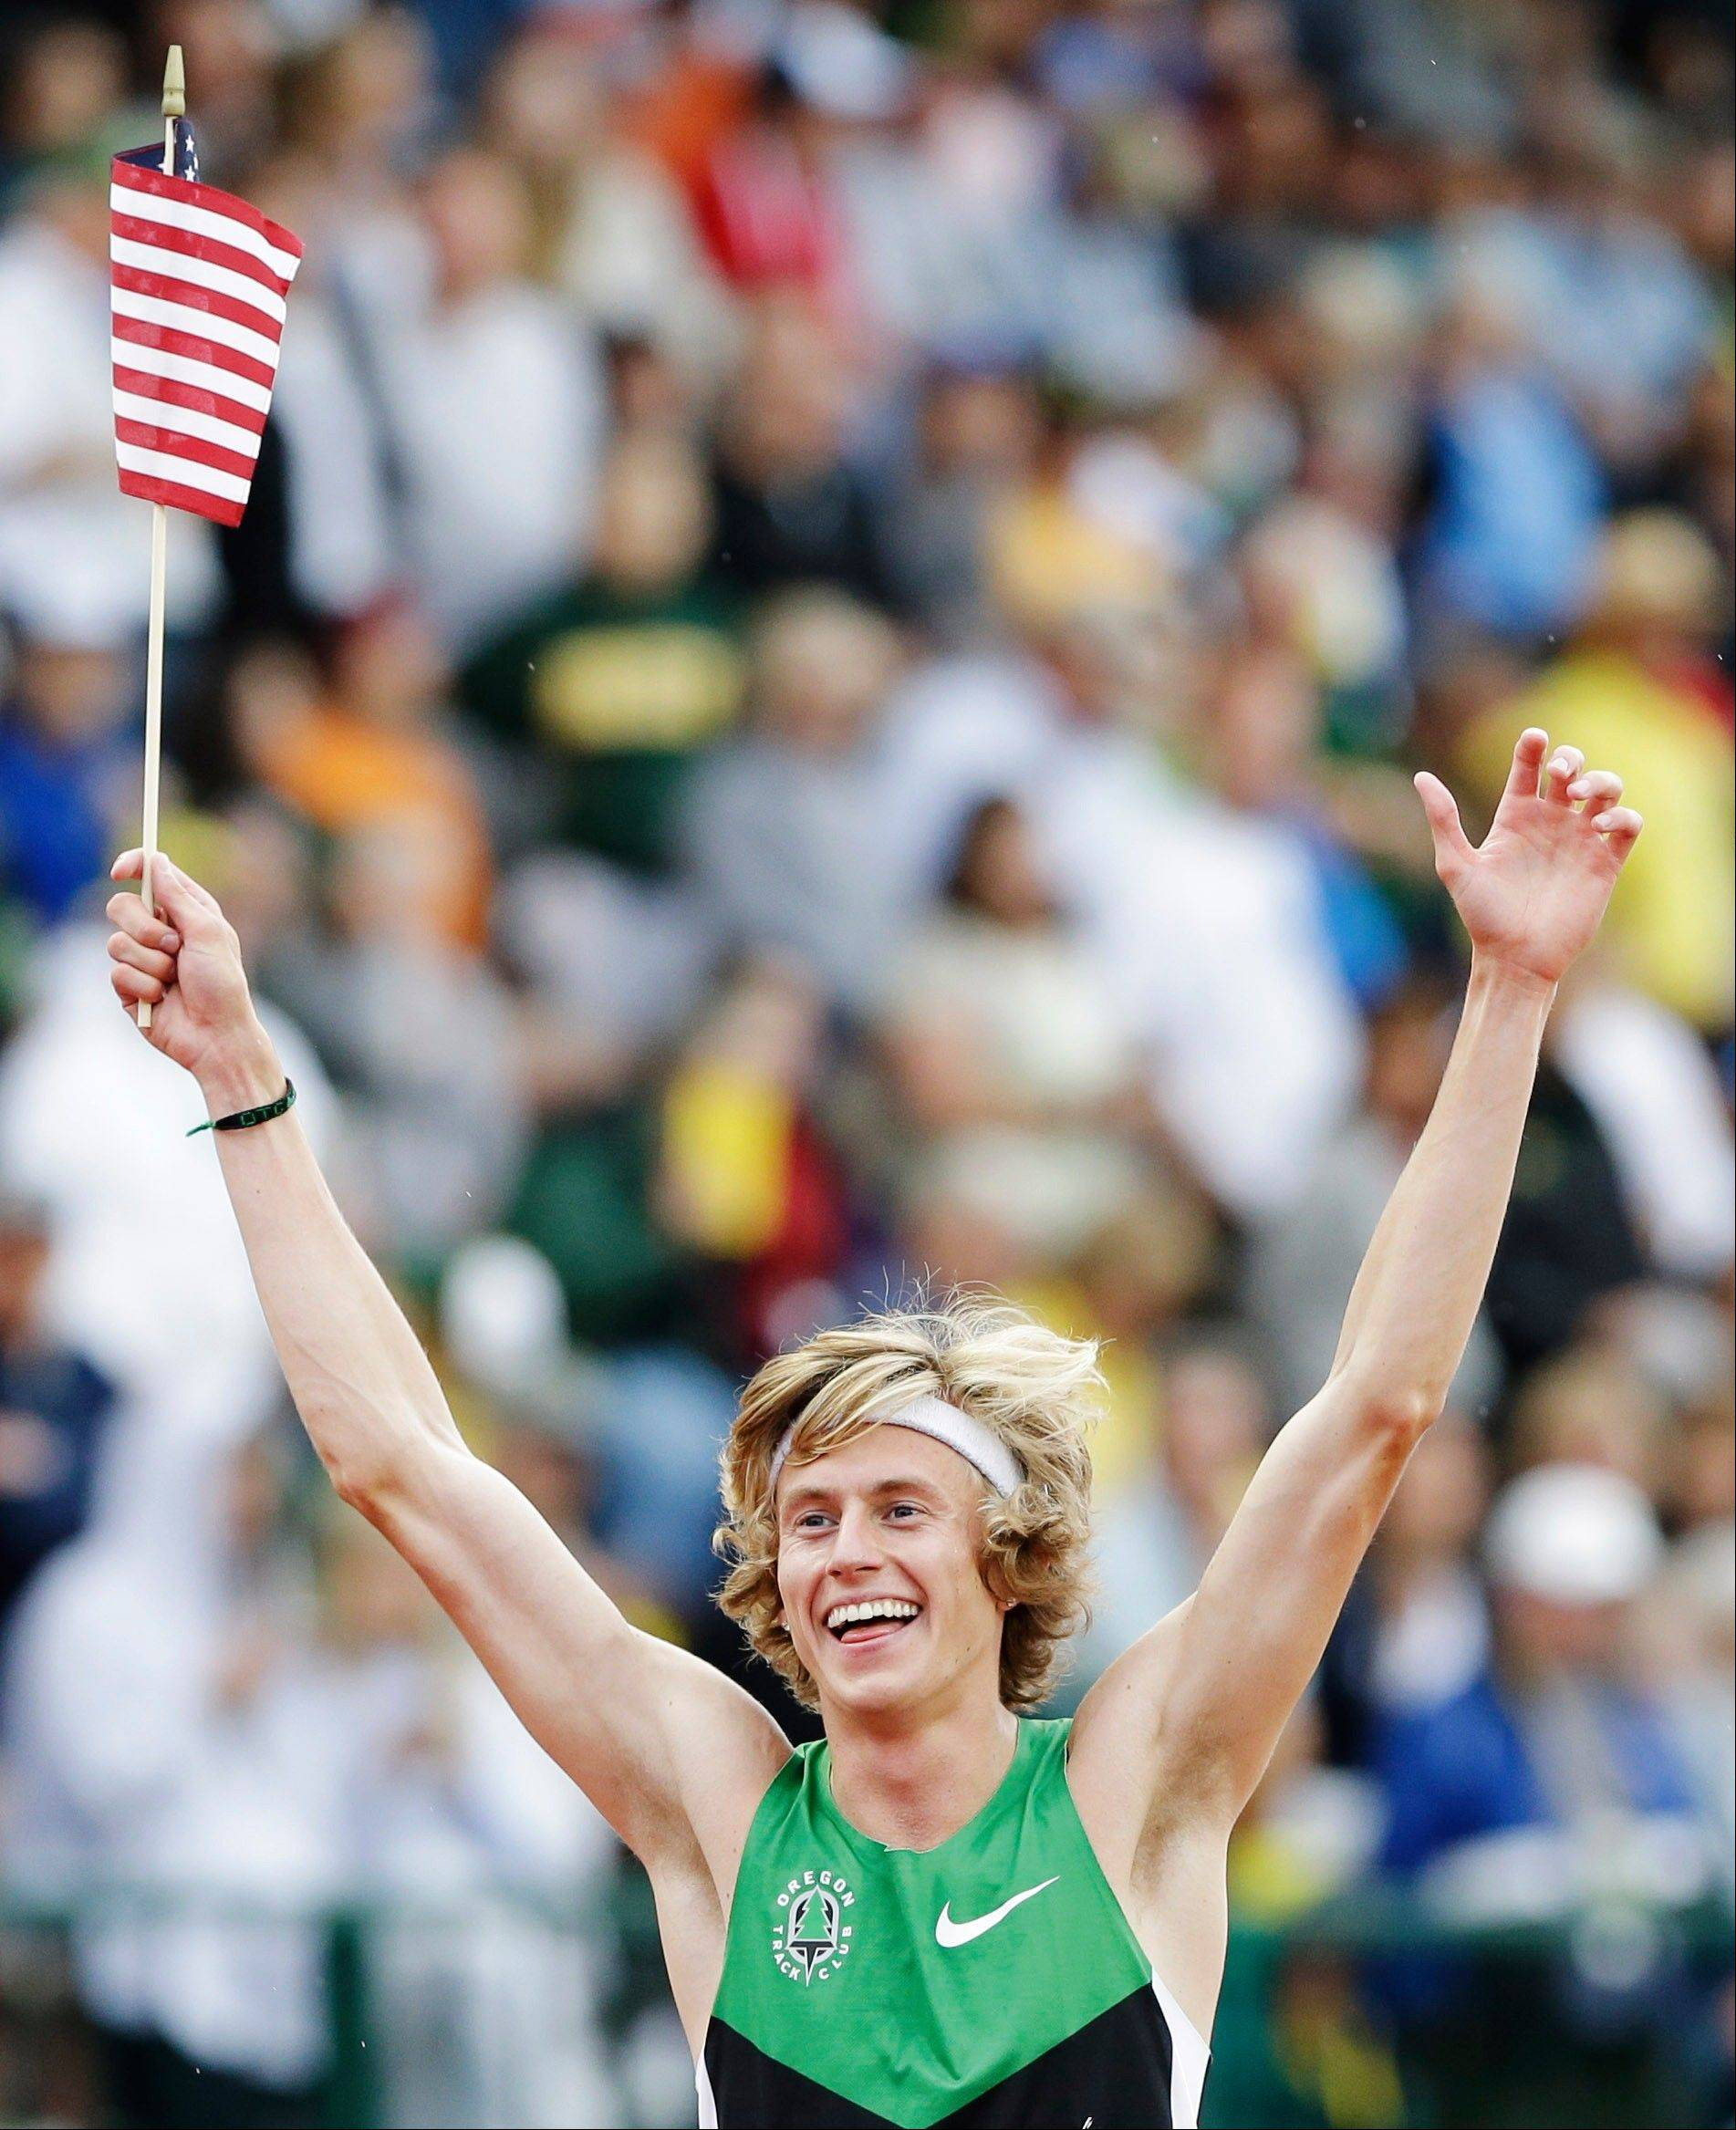 Jacobs High School graduate Evan Jager celebrates after winning the men's 3000 meter steeplechase at the U.S. Olympic Track and Field Trials June 28 in Eugene, Or.